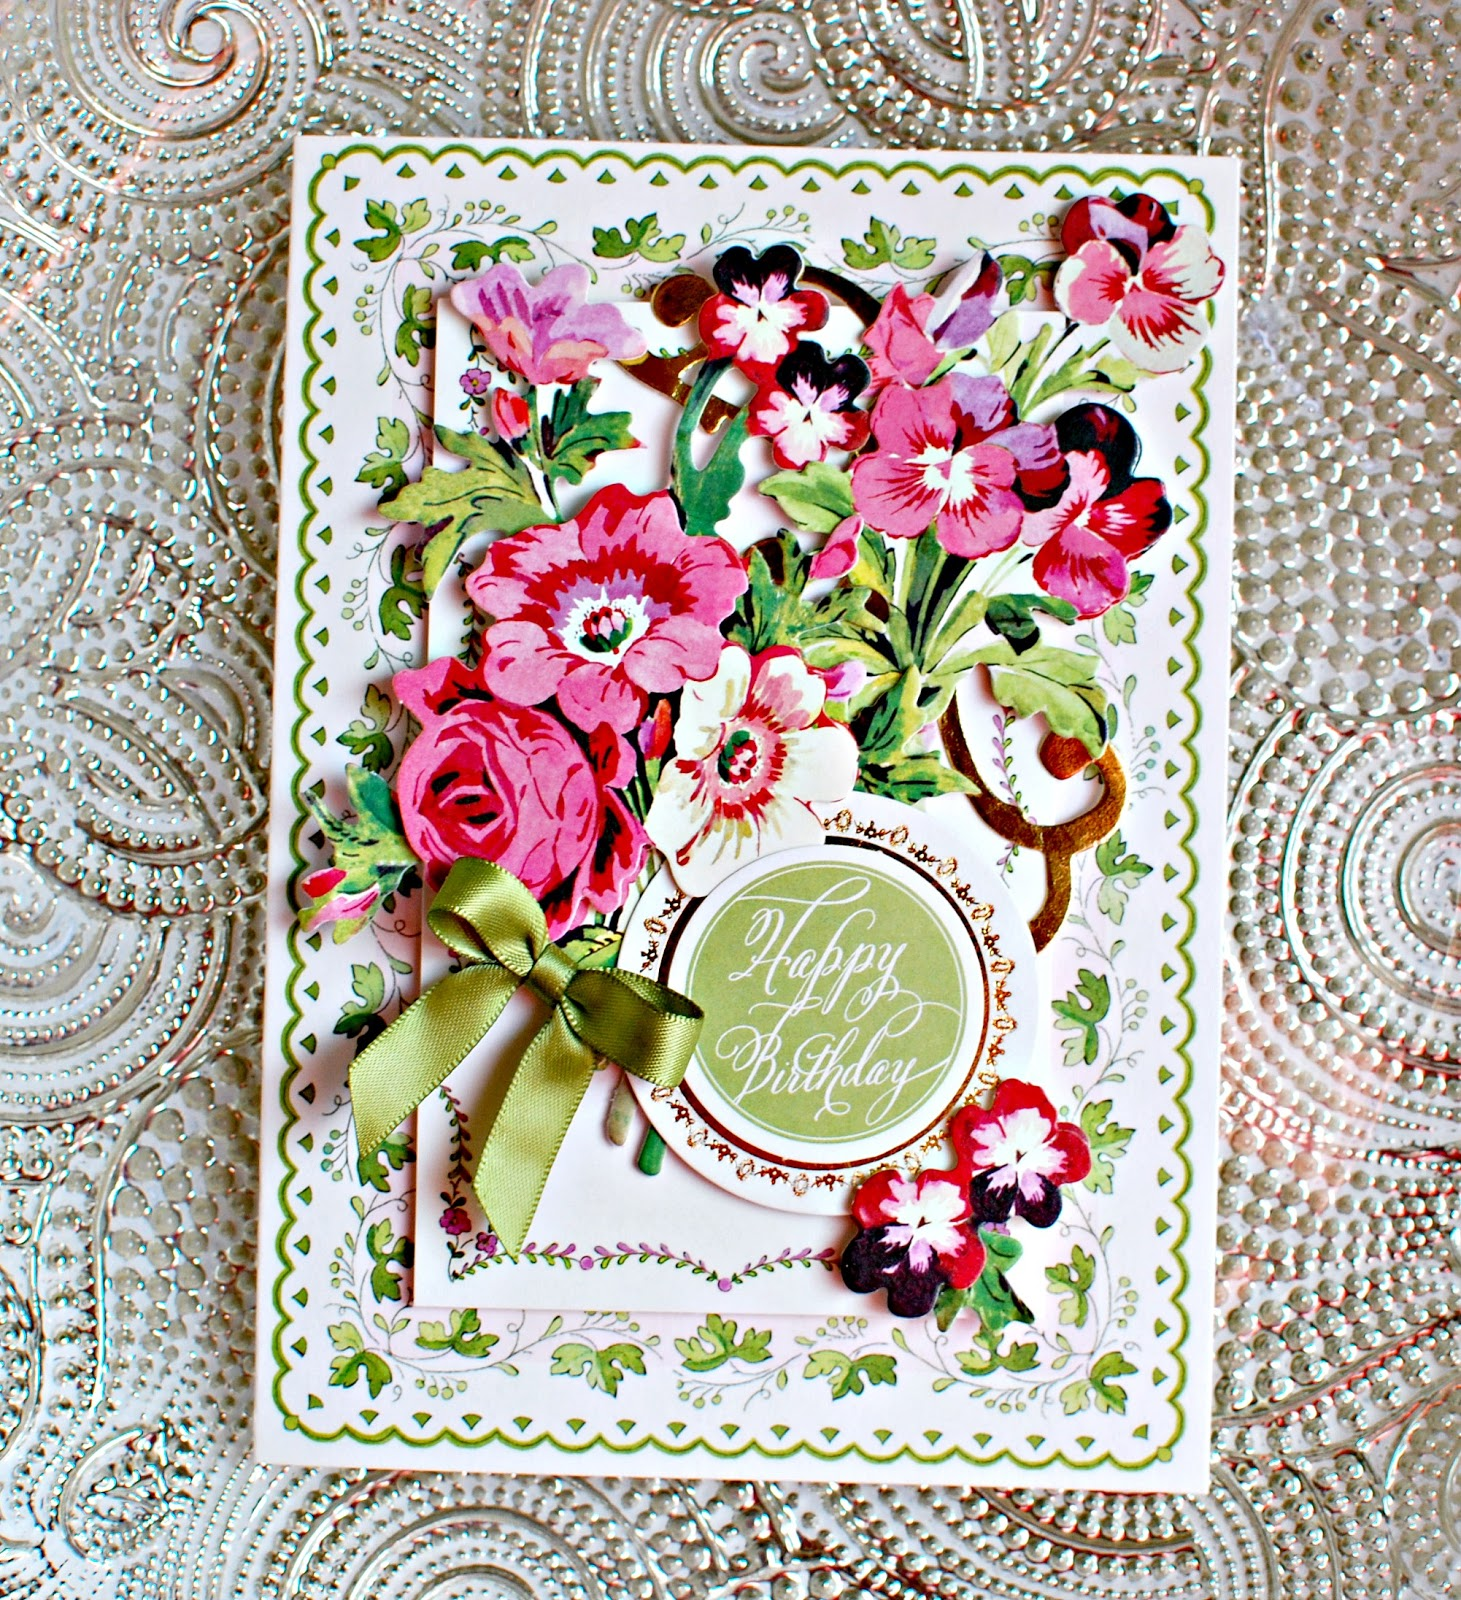 Crafty creations with shemaine pretty paintings card kit by anna heres a few i put together using the kit for its hsn debut back in march mightylinksfo